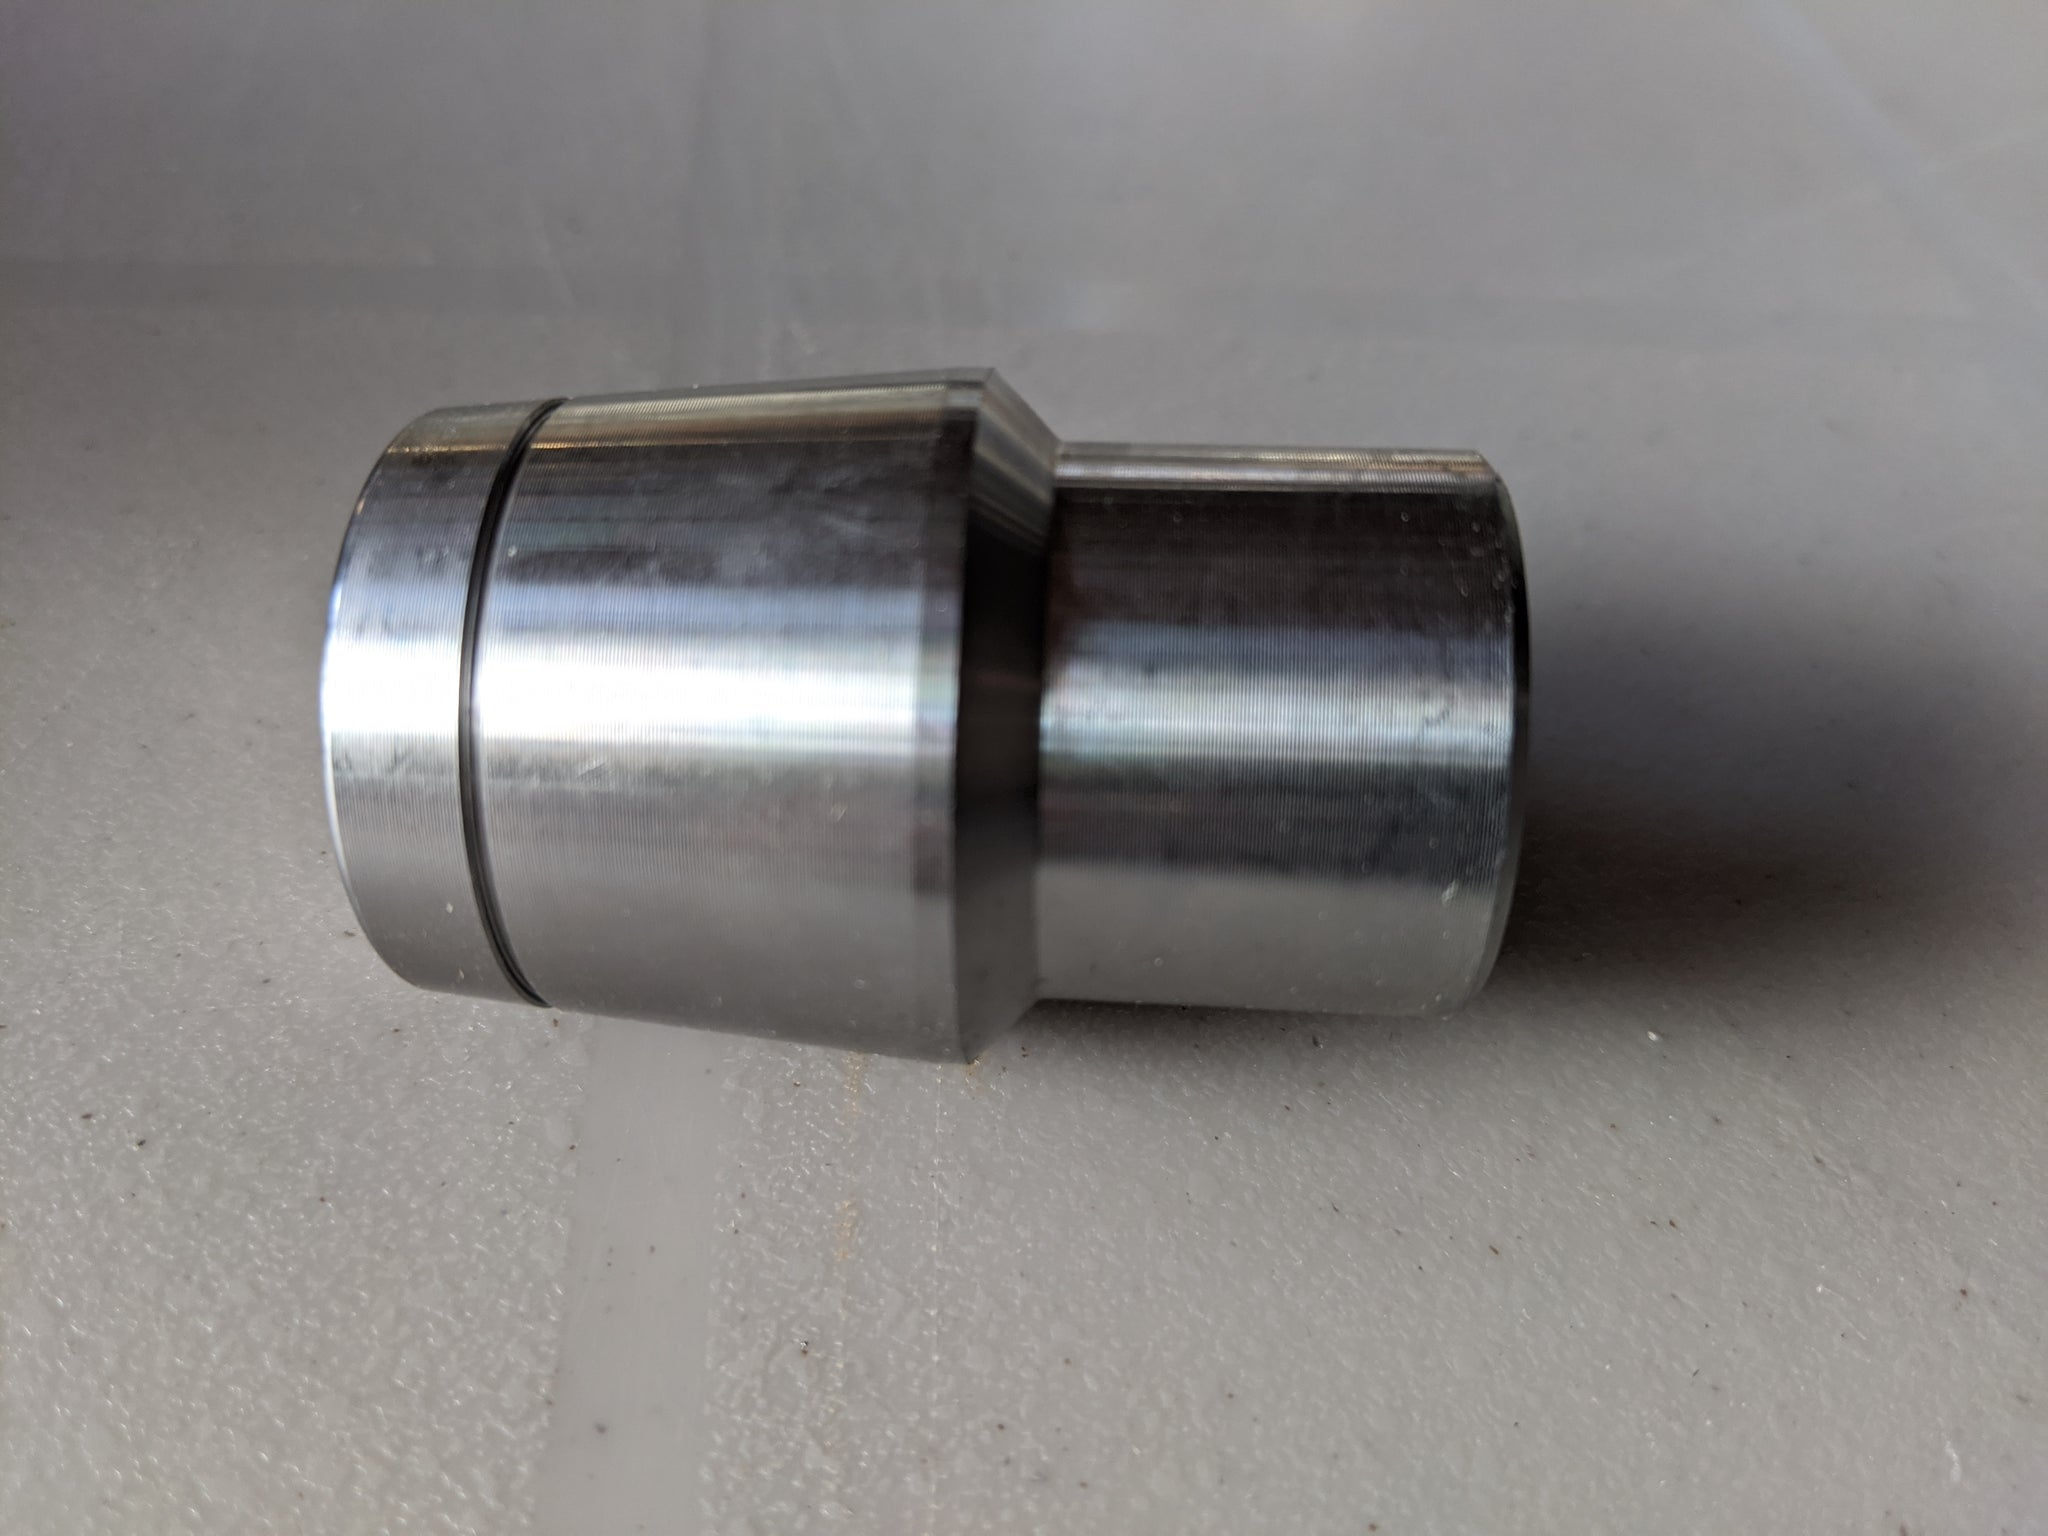 FK Bearing 2807L Weldable Tube End 1.25 x .120 x 5/8-18 Left Hand Thread